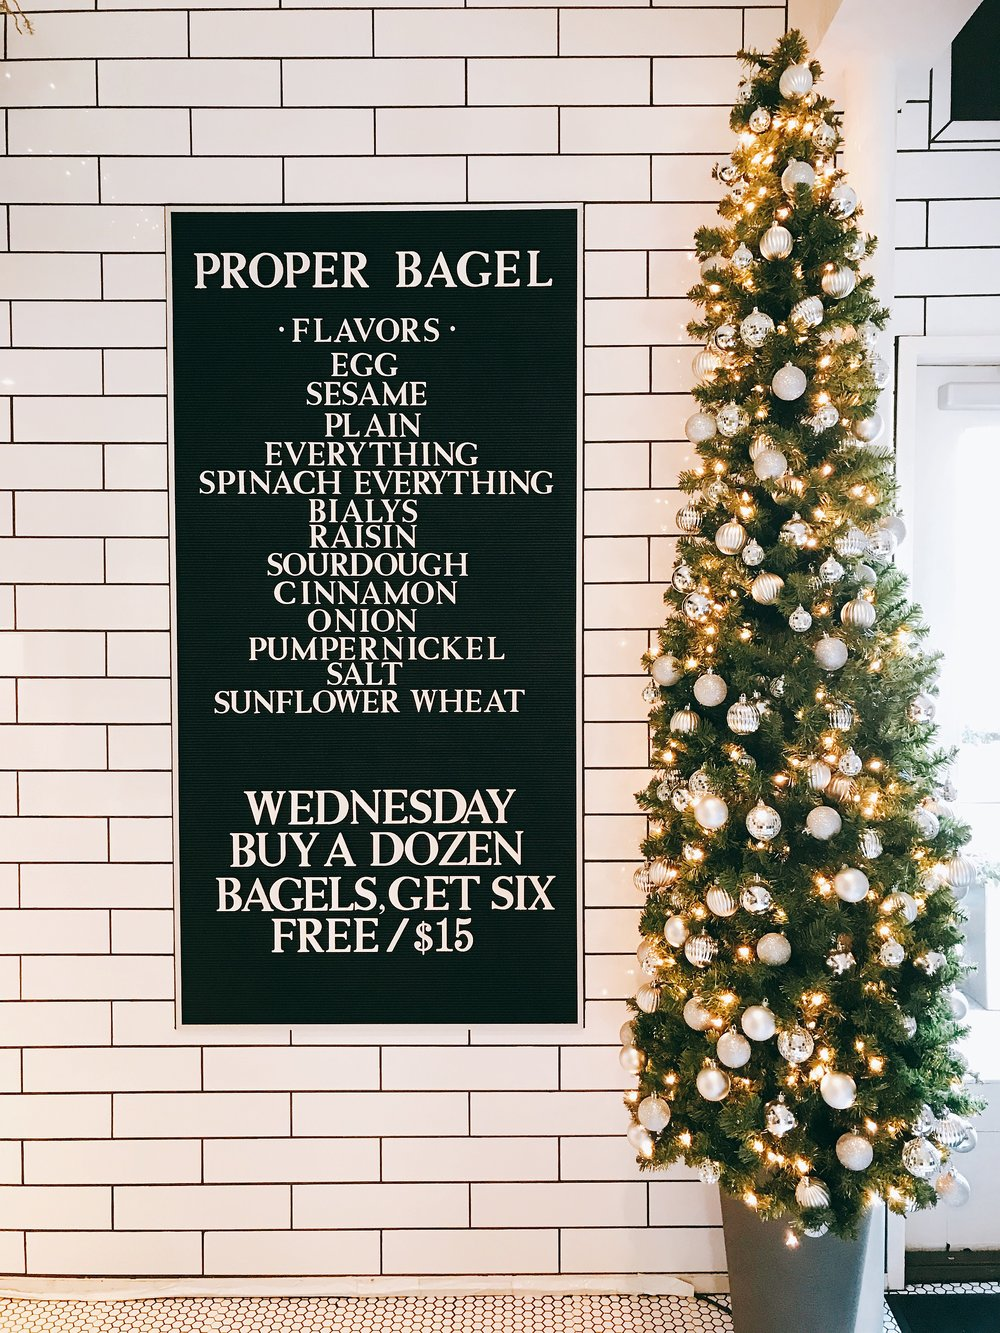 Proper Bagel Menu: Quite The Assortment of Flavors